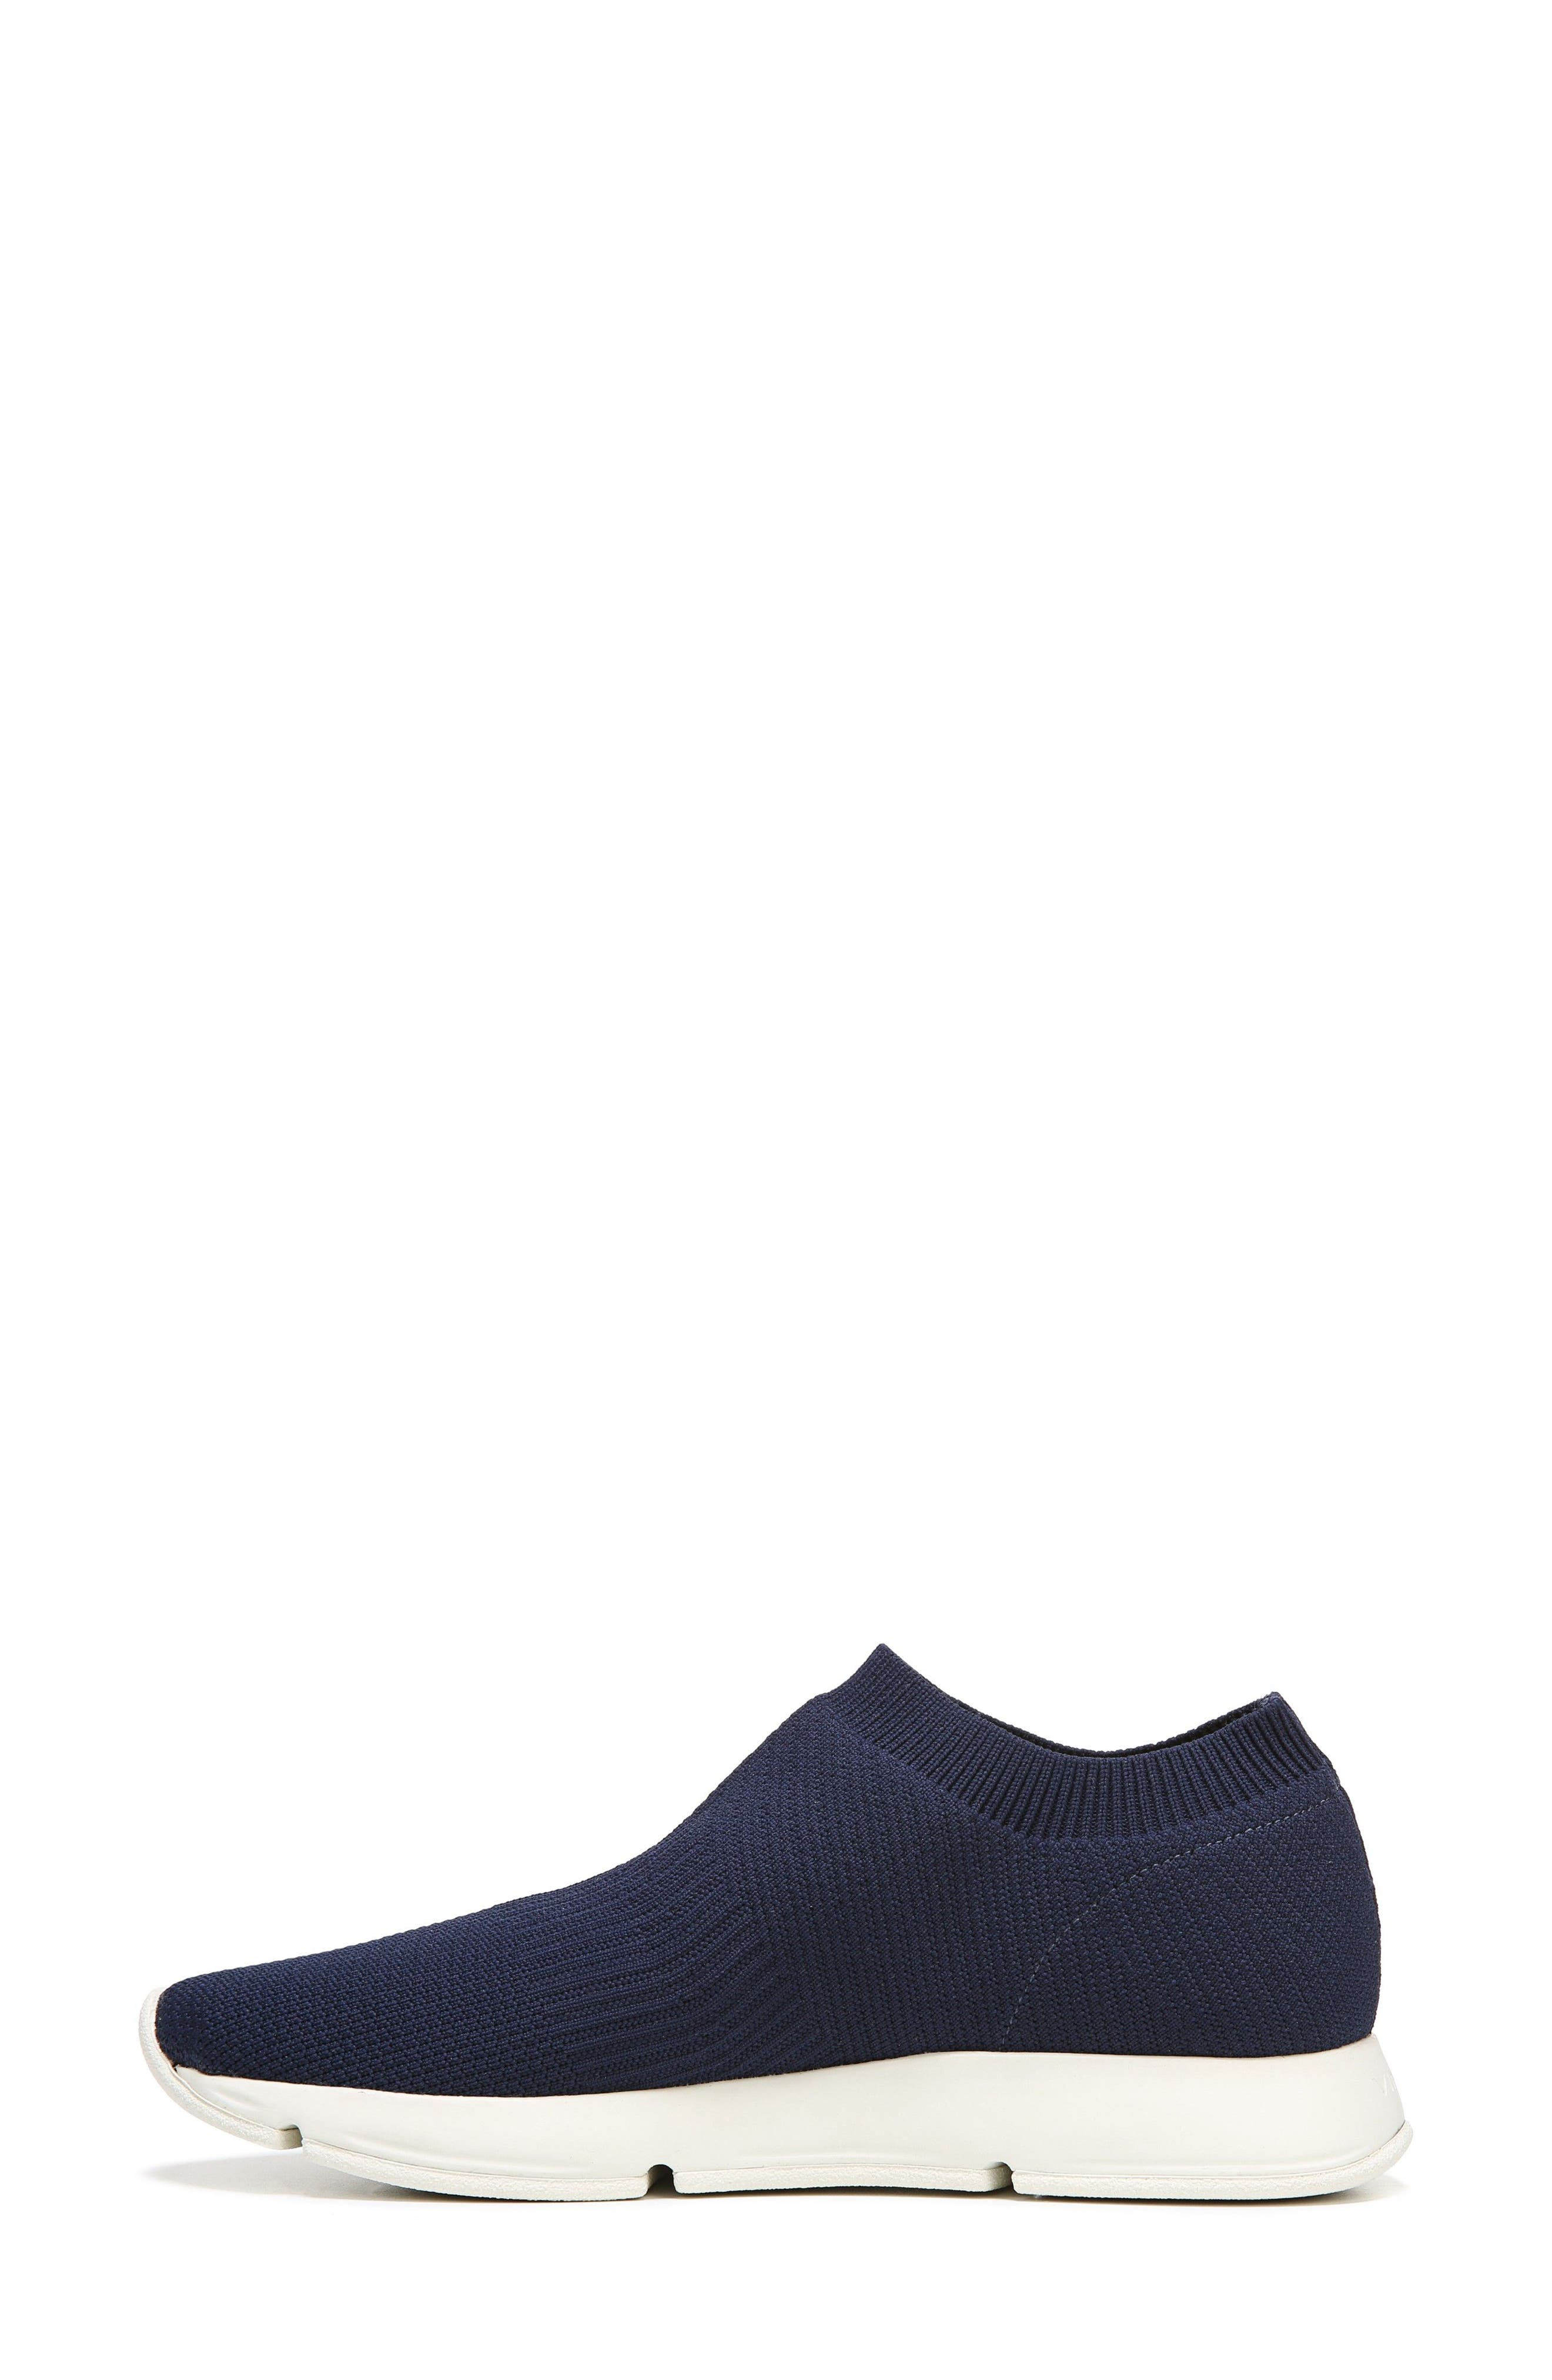 Theroux Slip-On Knit Sneaker,                             Alternate thumbnail 9, color,